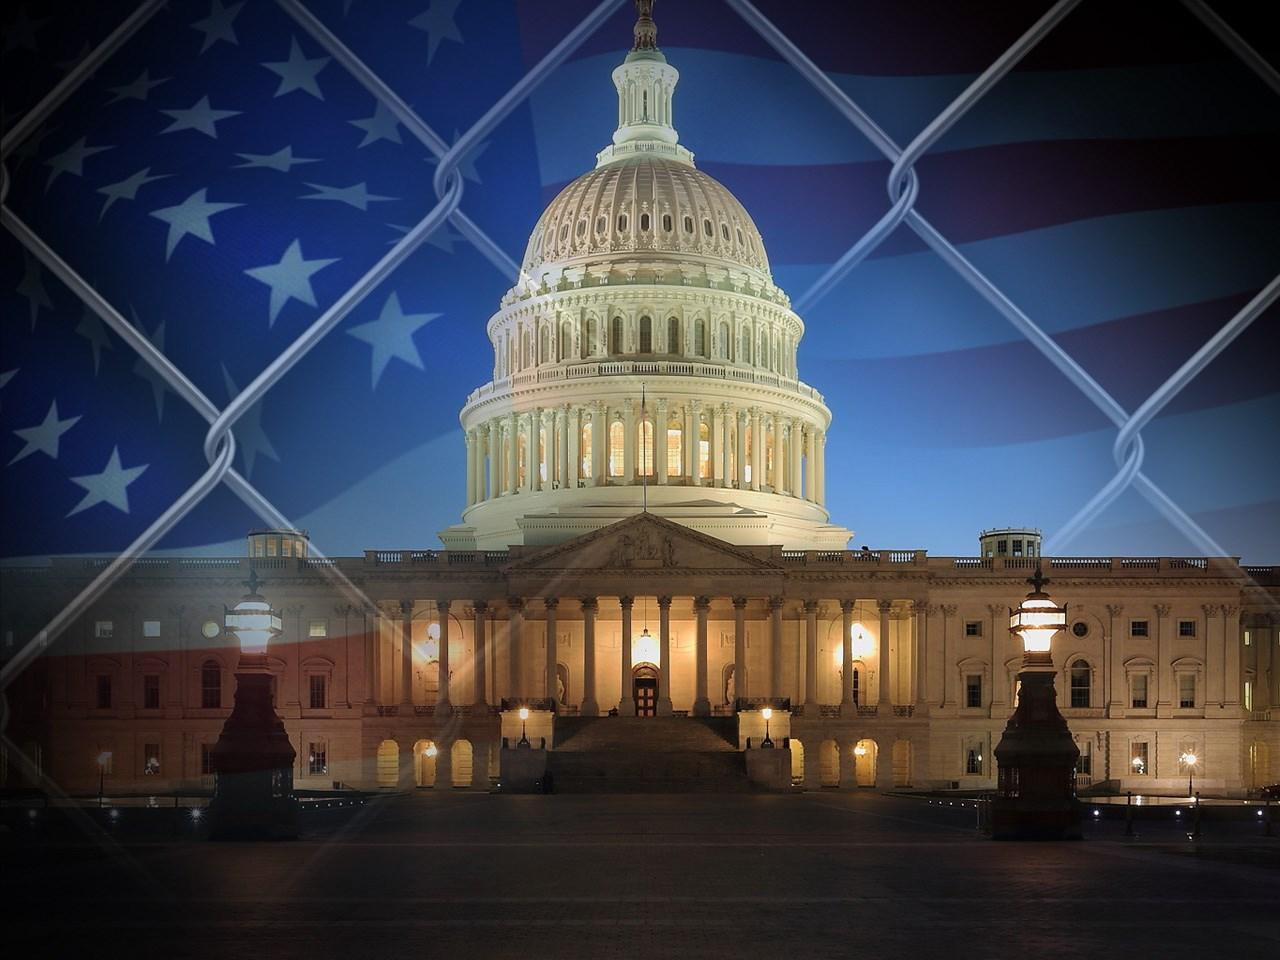 Sen. Hatch and 11 other Republican Senators have signed a letter addressed to U.S. Attorney General Jeff Sessions asking him to stop the practice of separating families at the U.S.-Mexico border. (Photo: MGN)